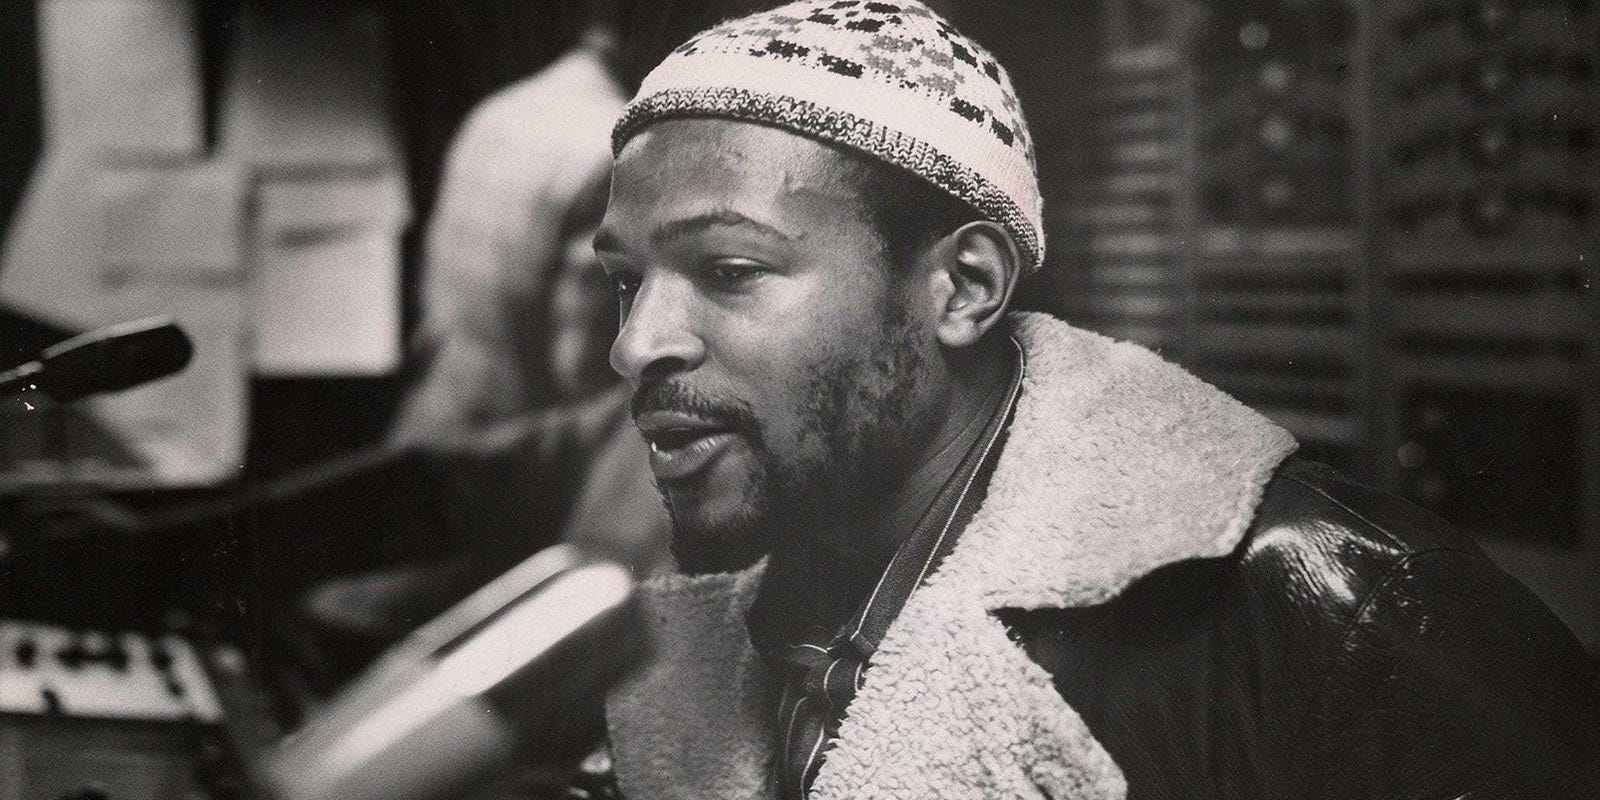 Marvin Gaye's 'What's Going On' still relevant and revealing, 50 years on